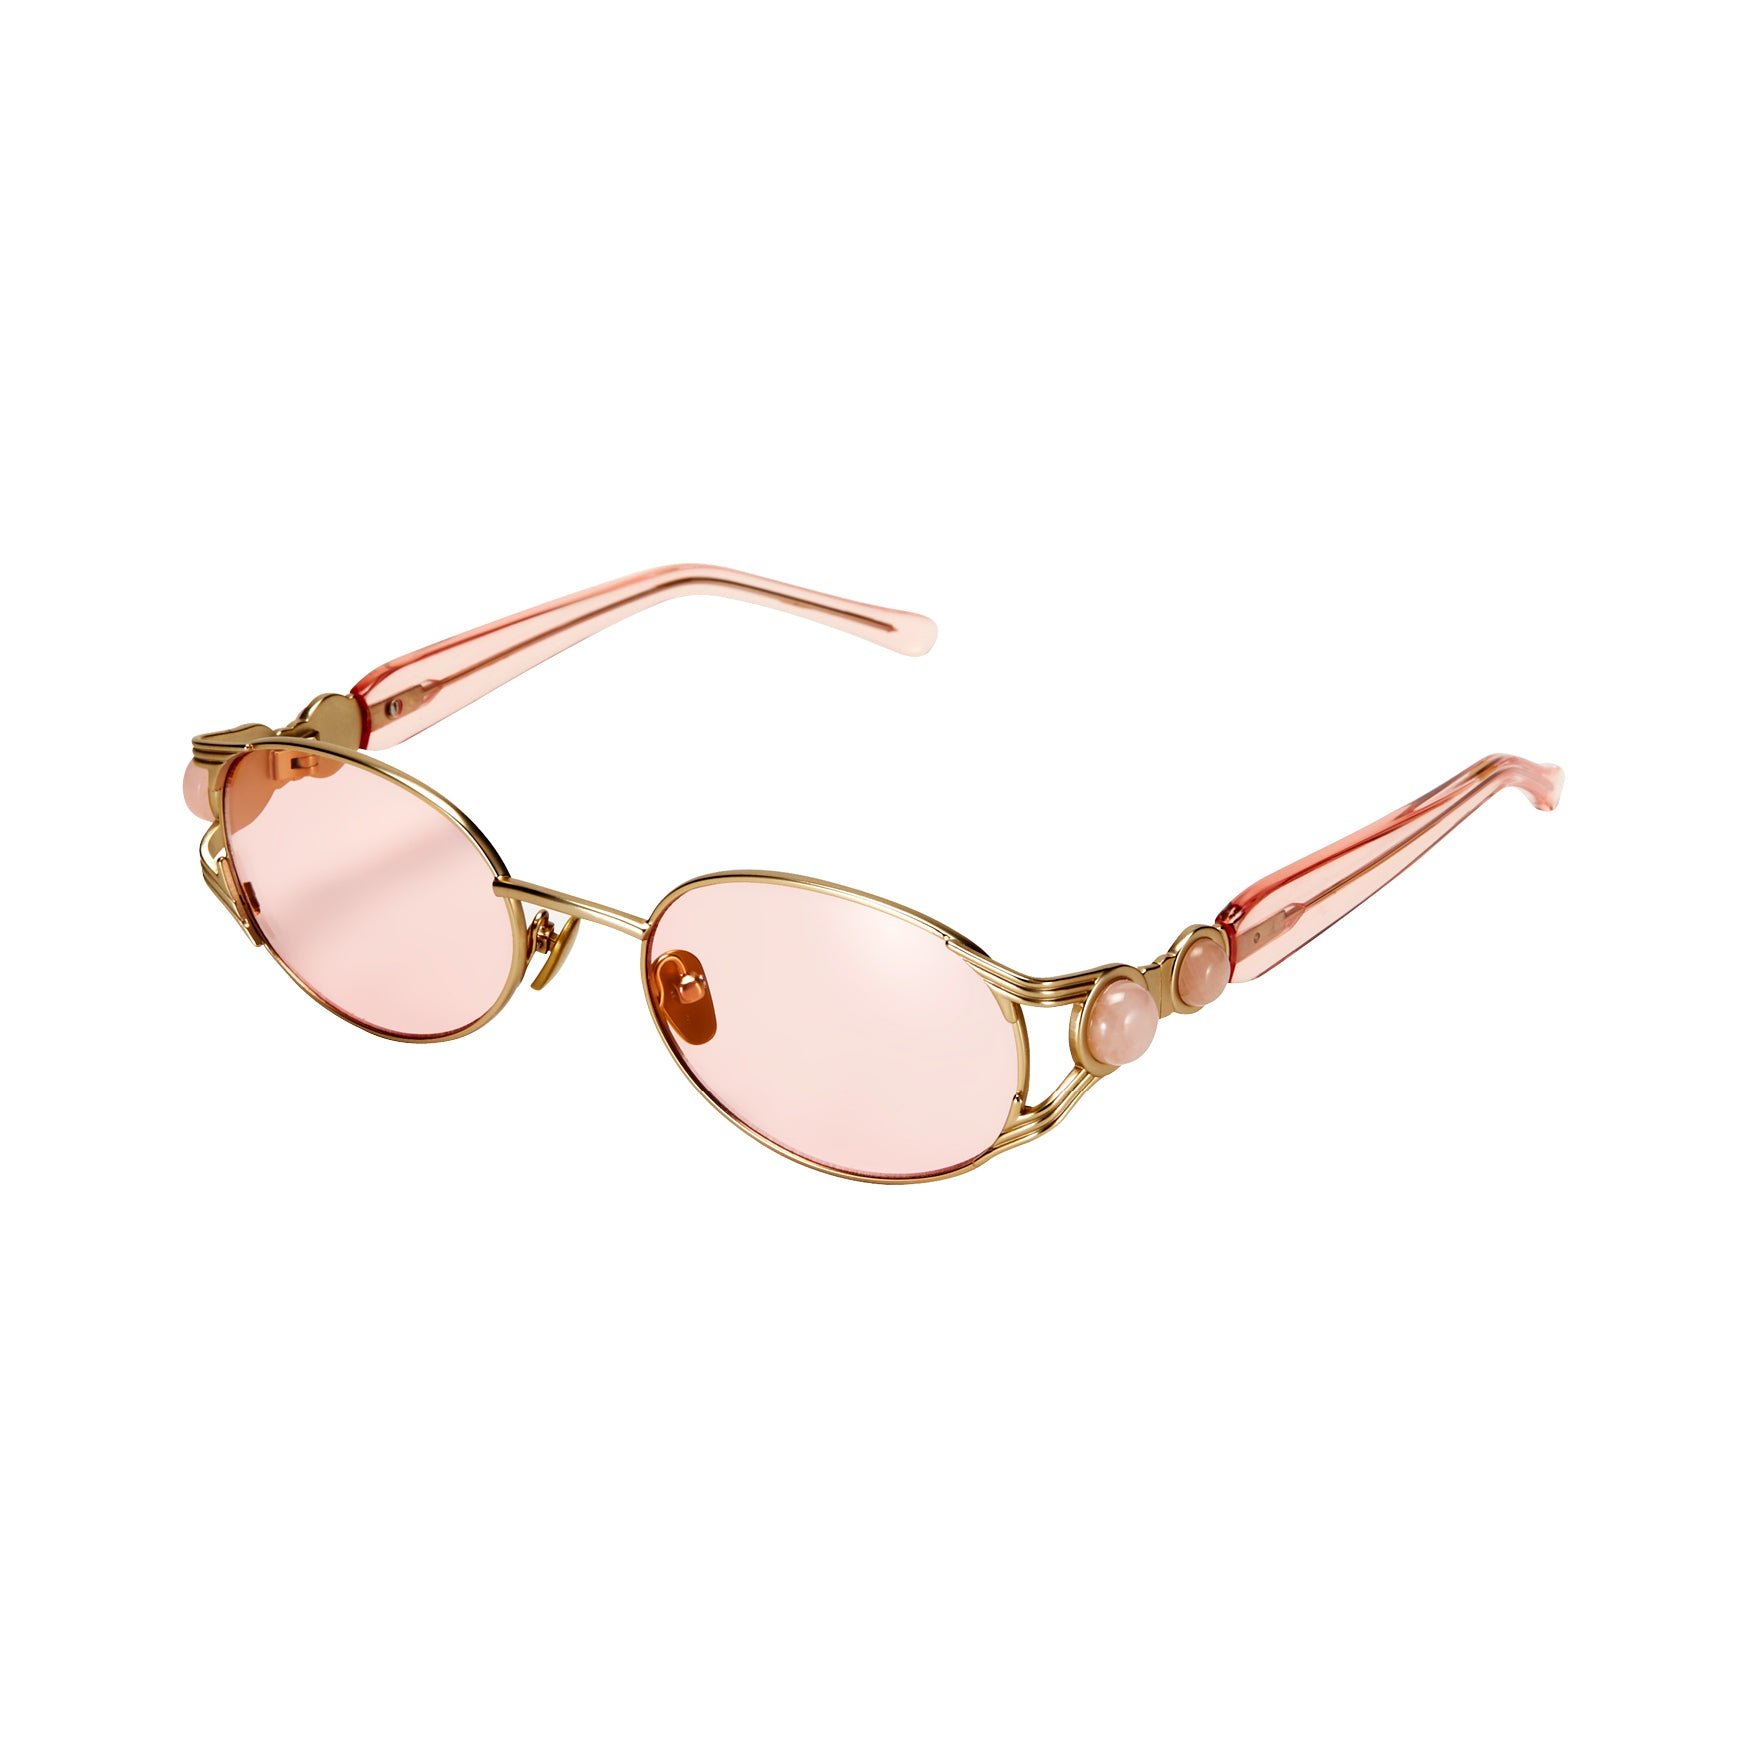 Oro Gold & Pink Sunglasses